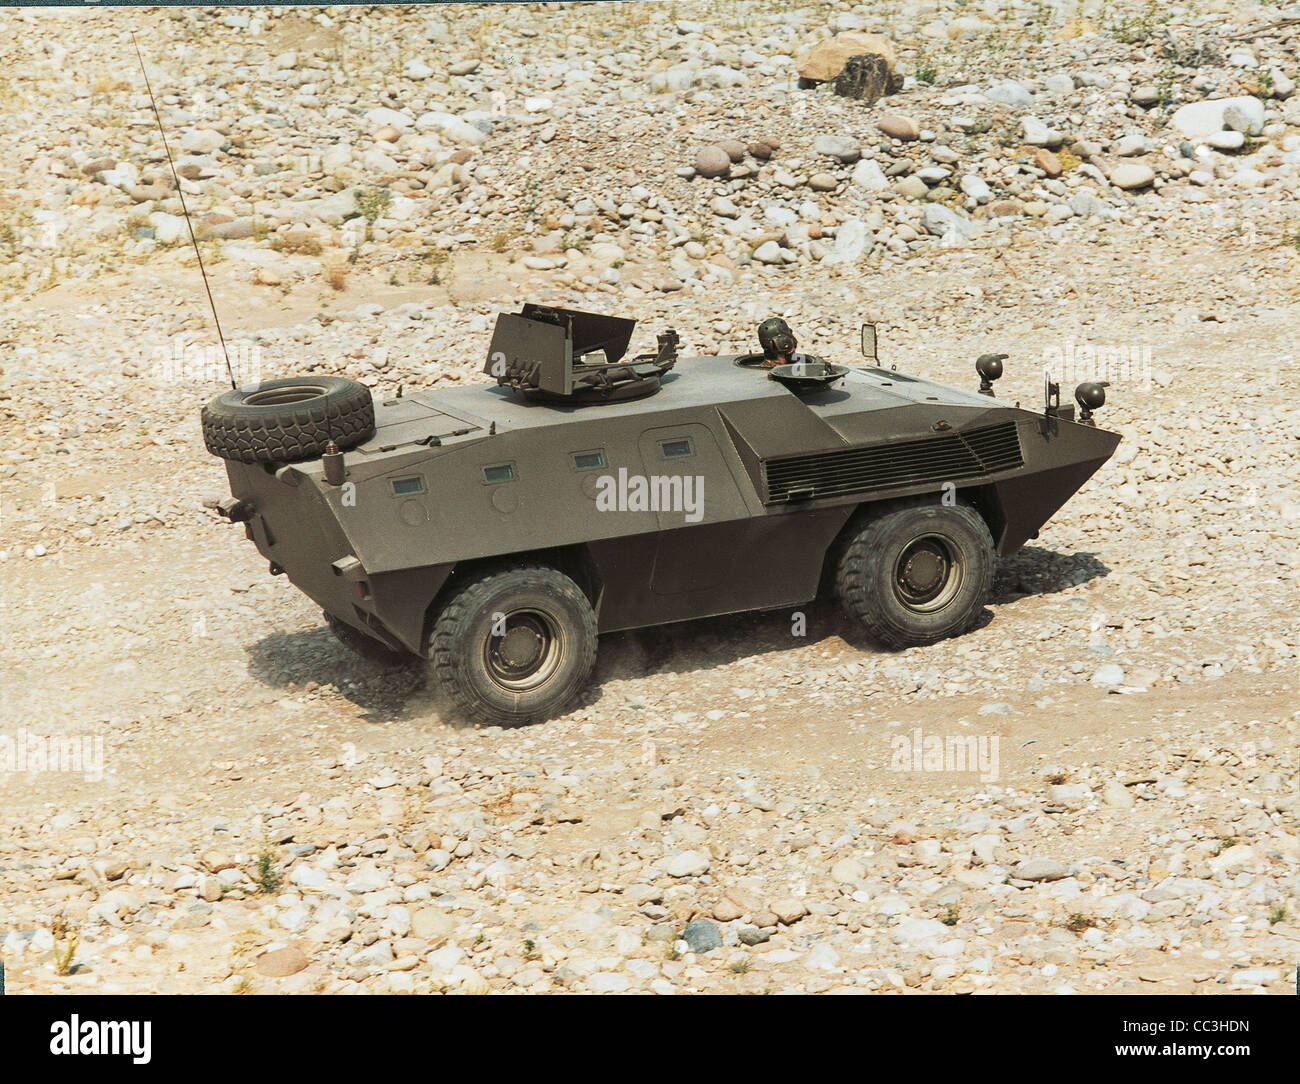 Military Vehicles 20th Century Italy Armored Fiat Iveco 6614 Eighties - Stock Image